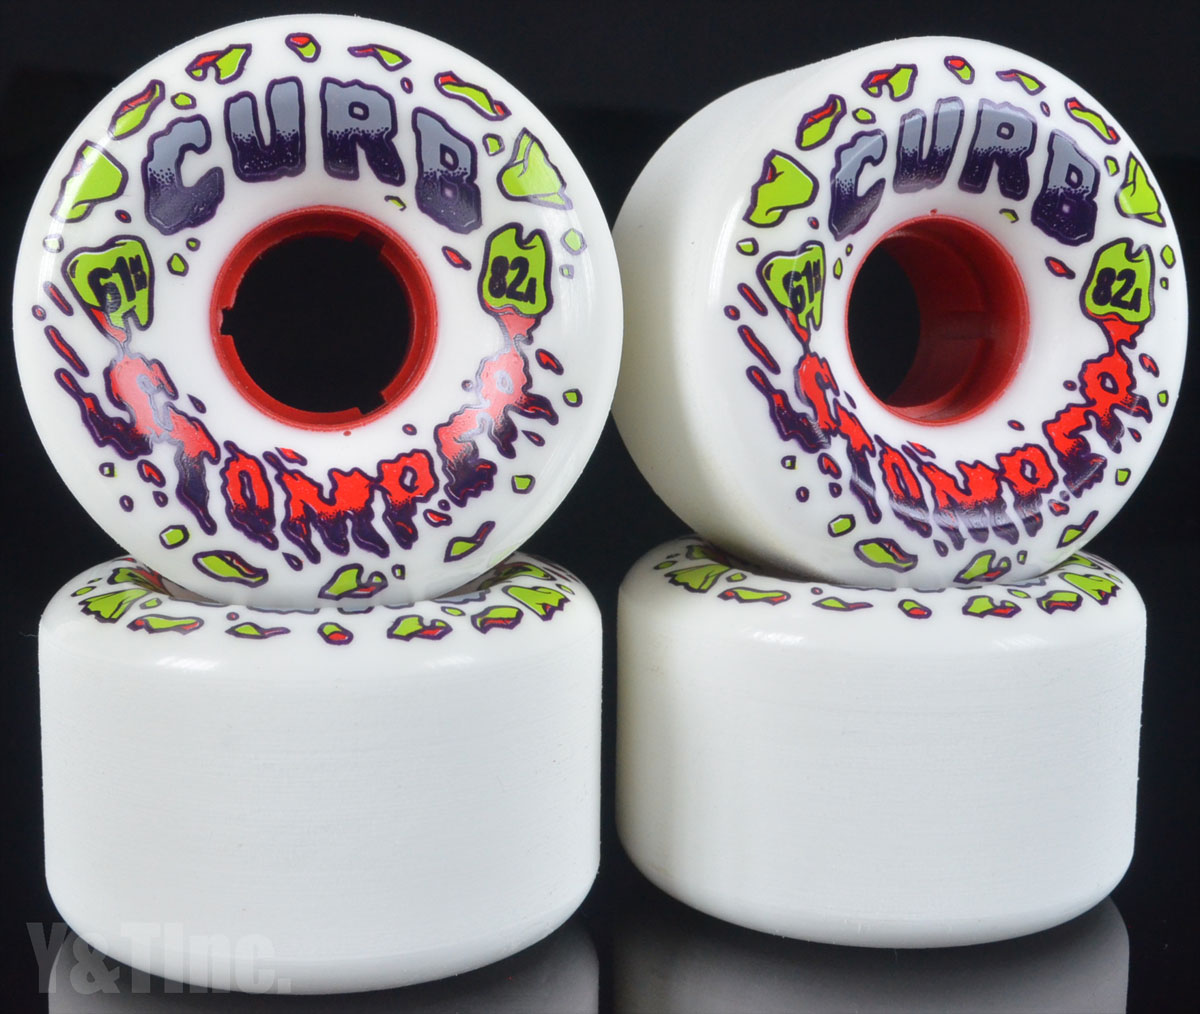 VENOM CURB STOMPERS 61mm 82a 1